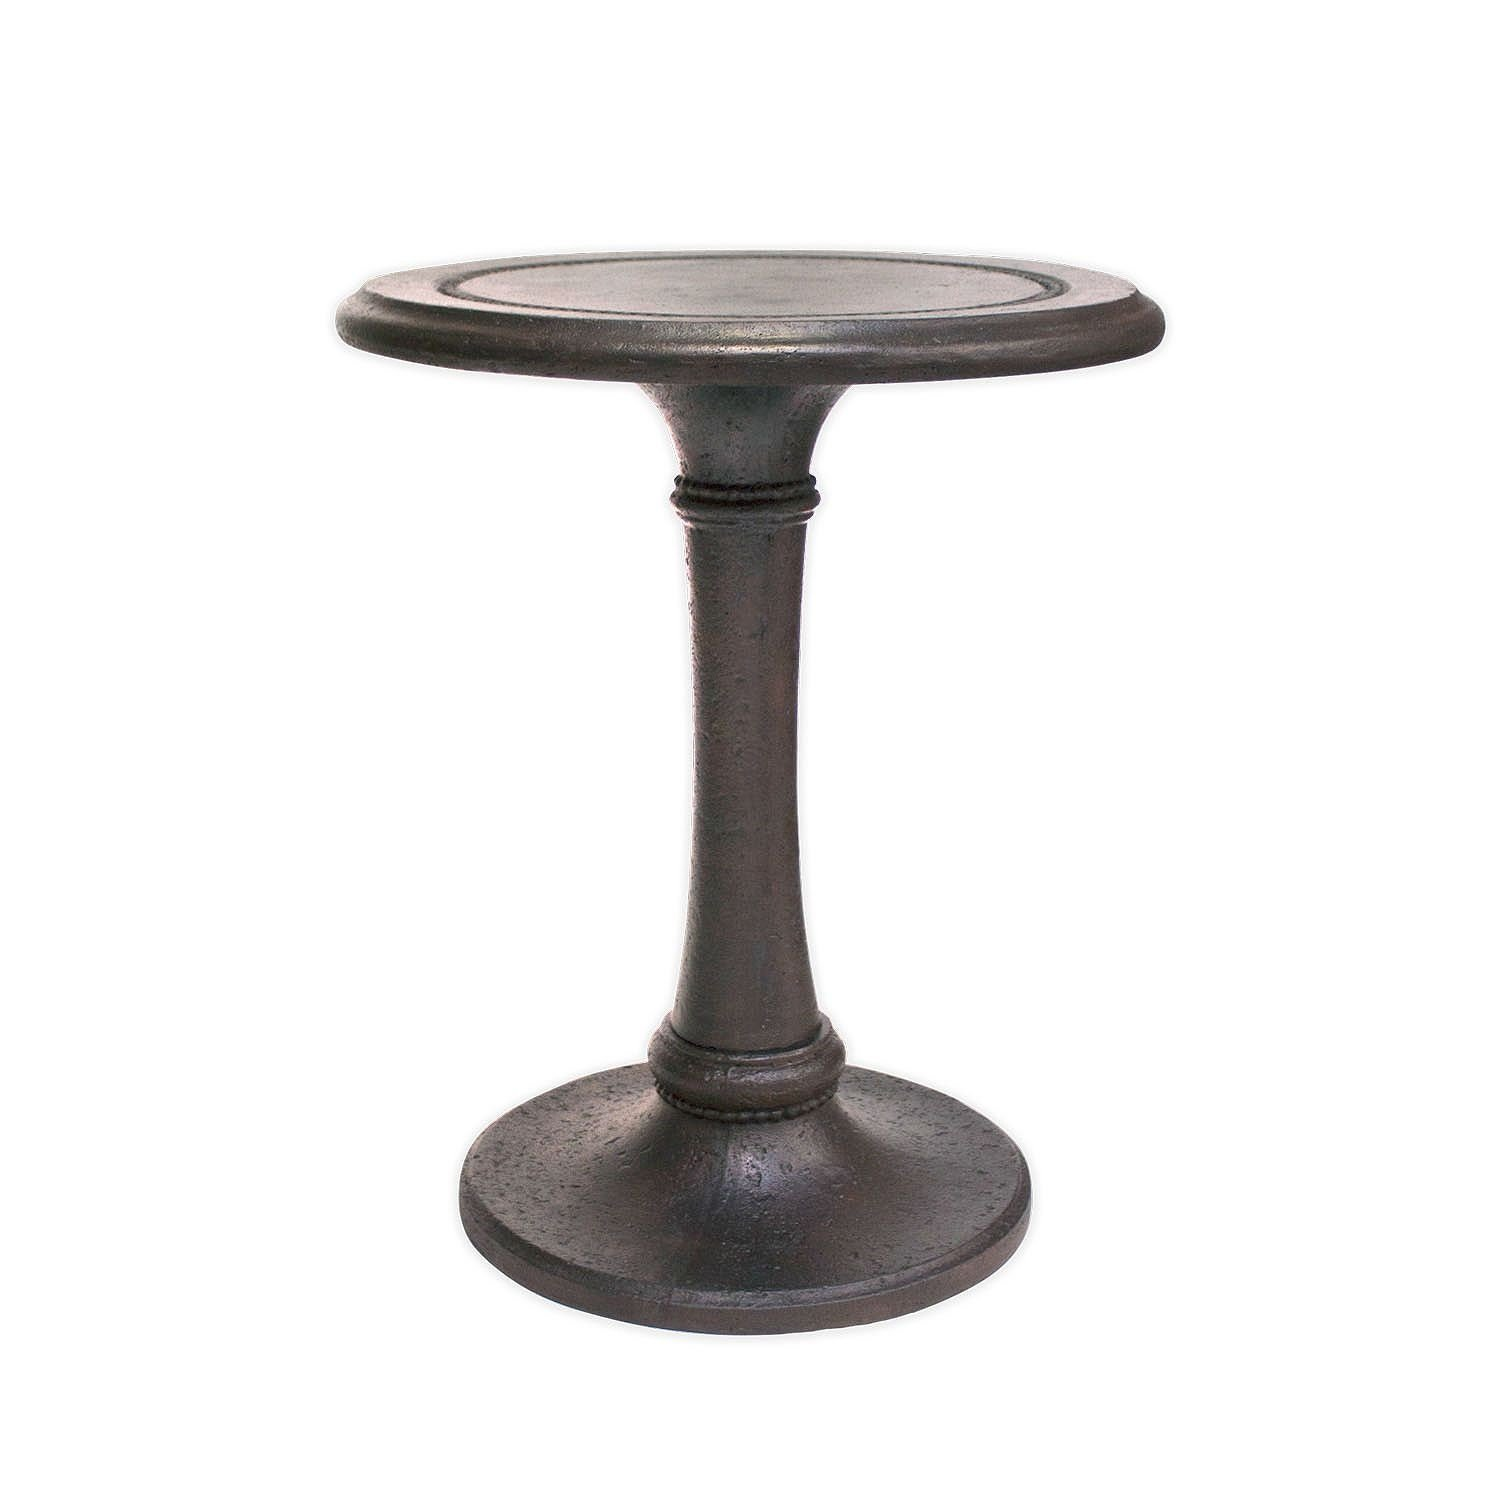 Mactan Cast Stone Patio Accent Side Table/ Plant Stand in Warm Cocoa